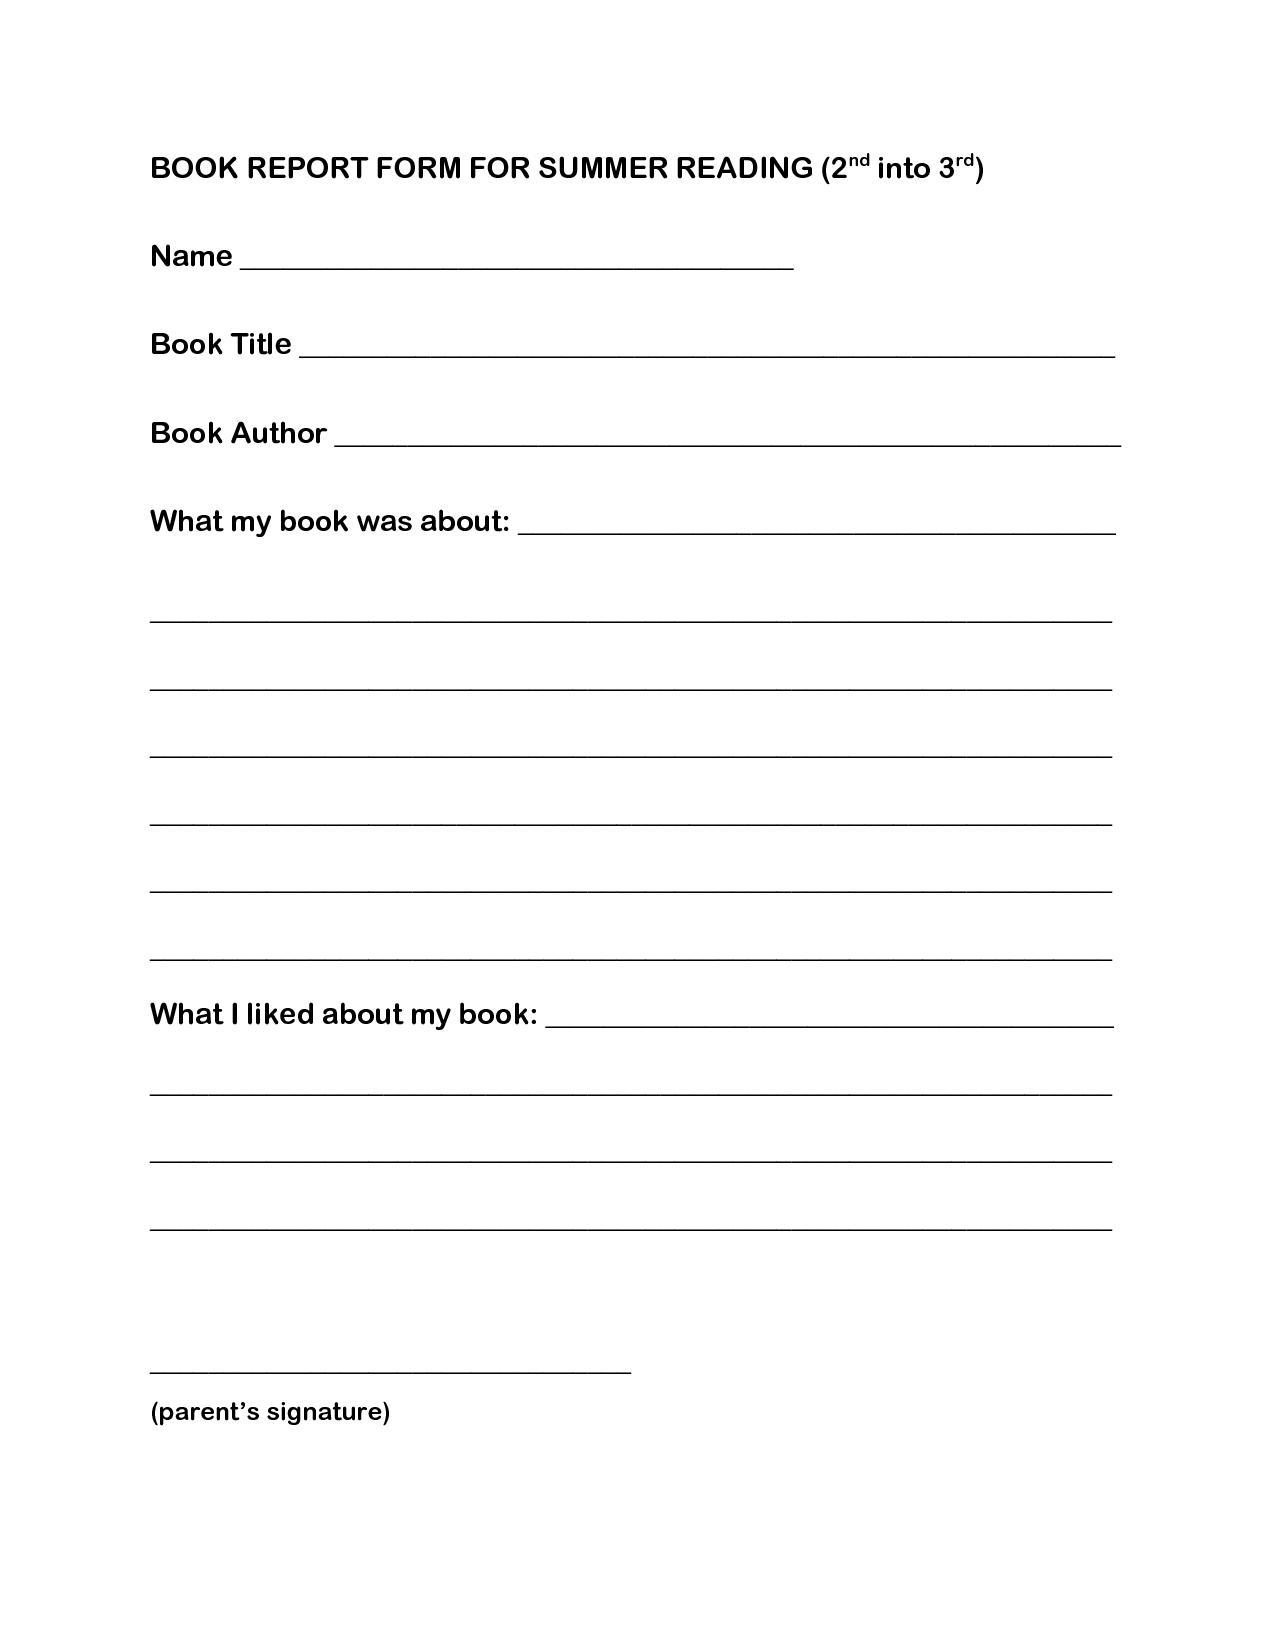 Biography Book Report Ideas For 4th Grade